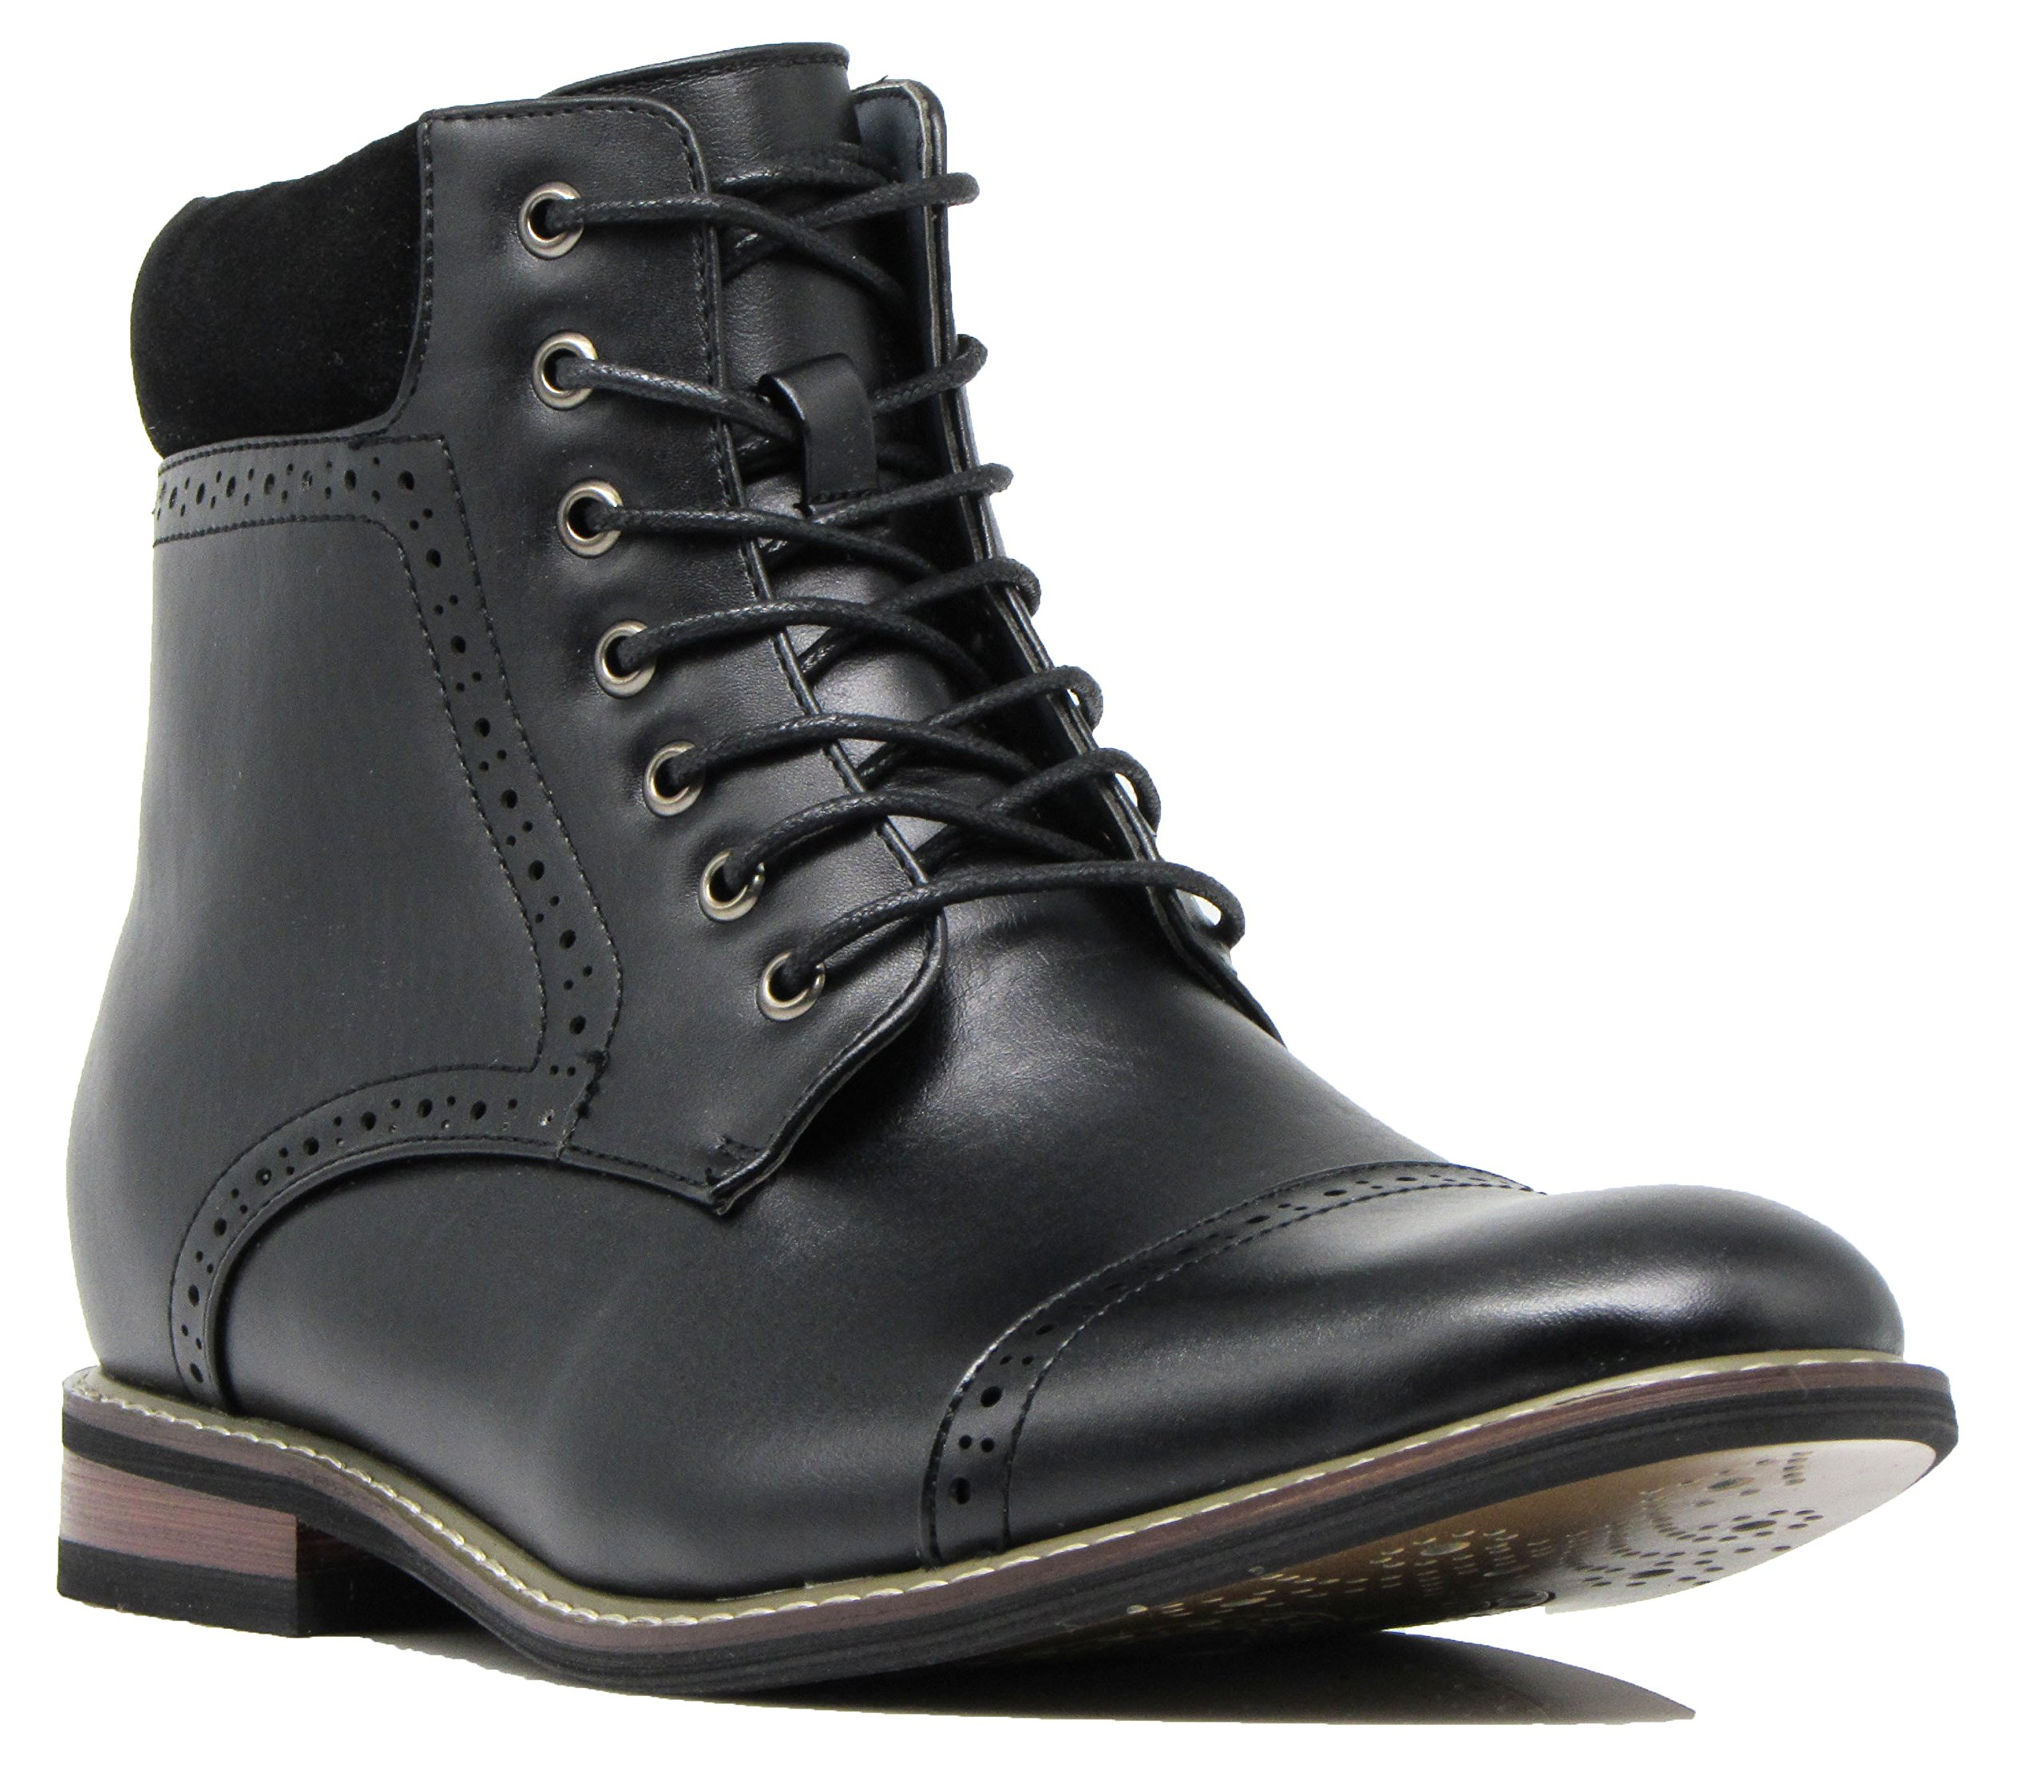 OTW4N Men's Chukka Ankle Dress Boots Captoe for Winter Lace Up Oxfords Boots (11 D(M) US, Black)